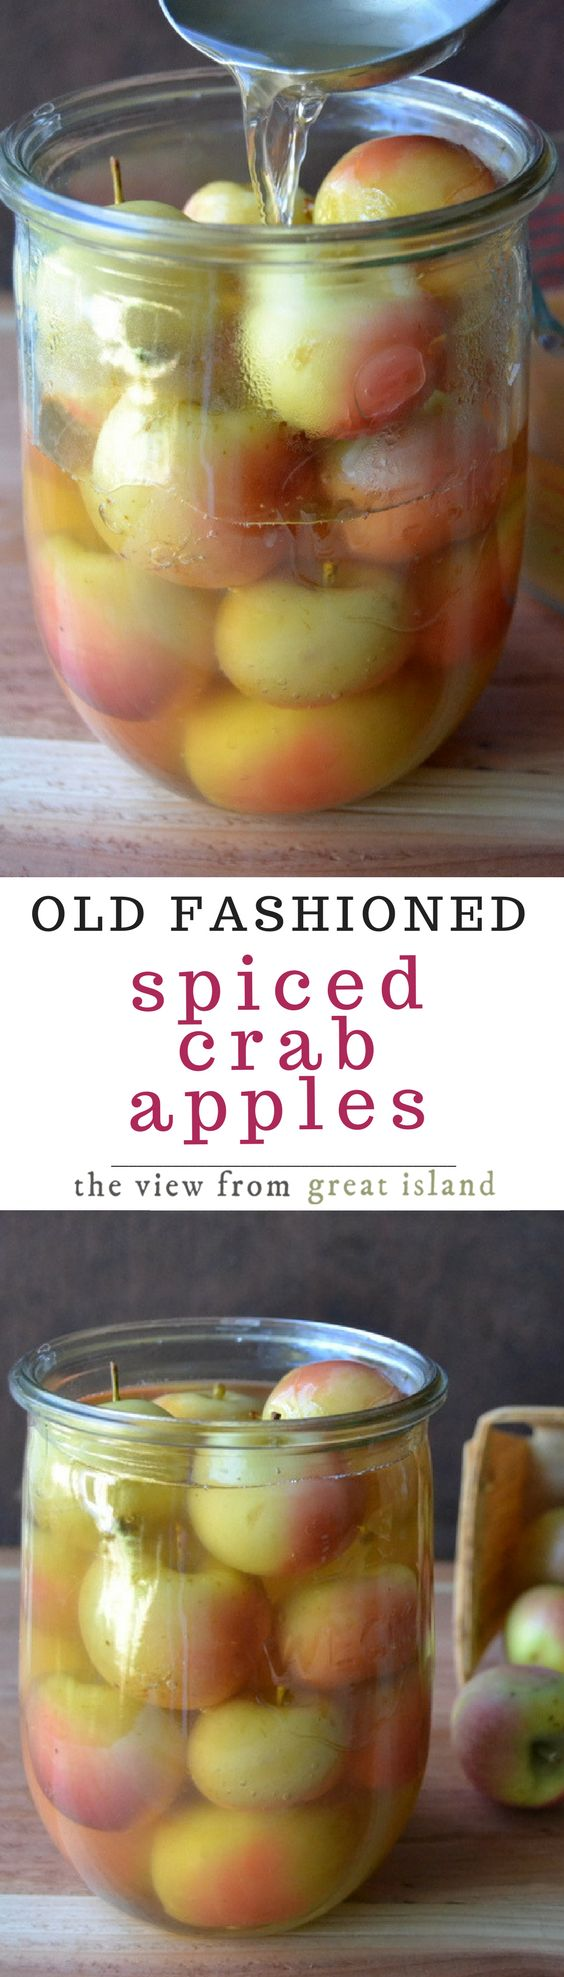 I love vintage recipes, they're a great way to shake things up in the kitchen because they come to you complete with a whole different set of food rules and values. This one for Old Fashioned Spiced Crab Apples goes back to the days when families would scrimp and scrounge to use or preserve every bit of food available to them, including the scrawny crab apples from the front yard tree.   This is a lovely side dish for any fall or winter meal. | Thanksgiving | pickles | apples |